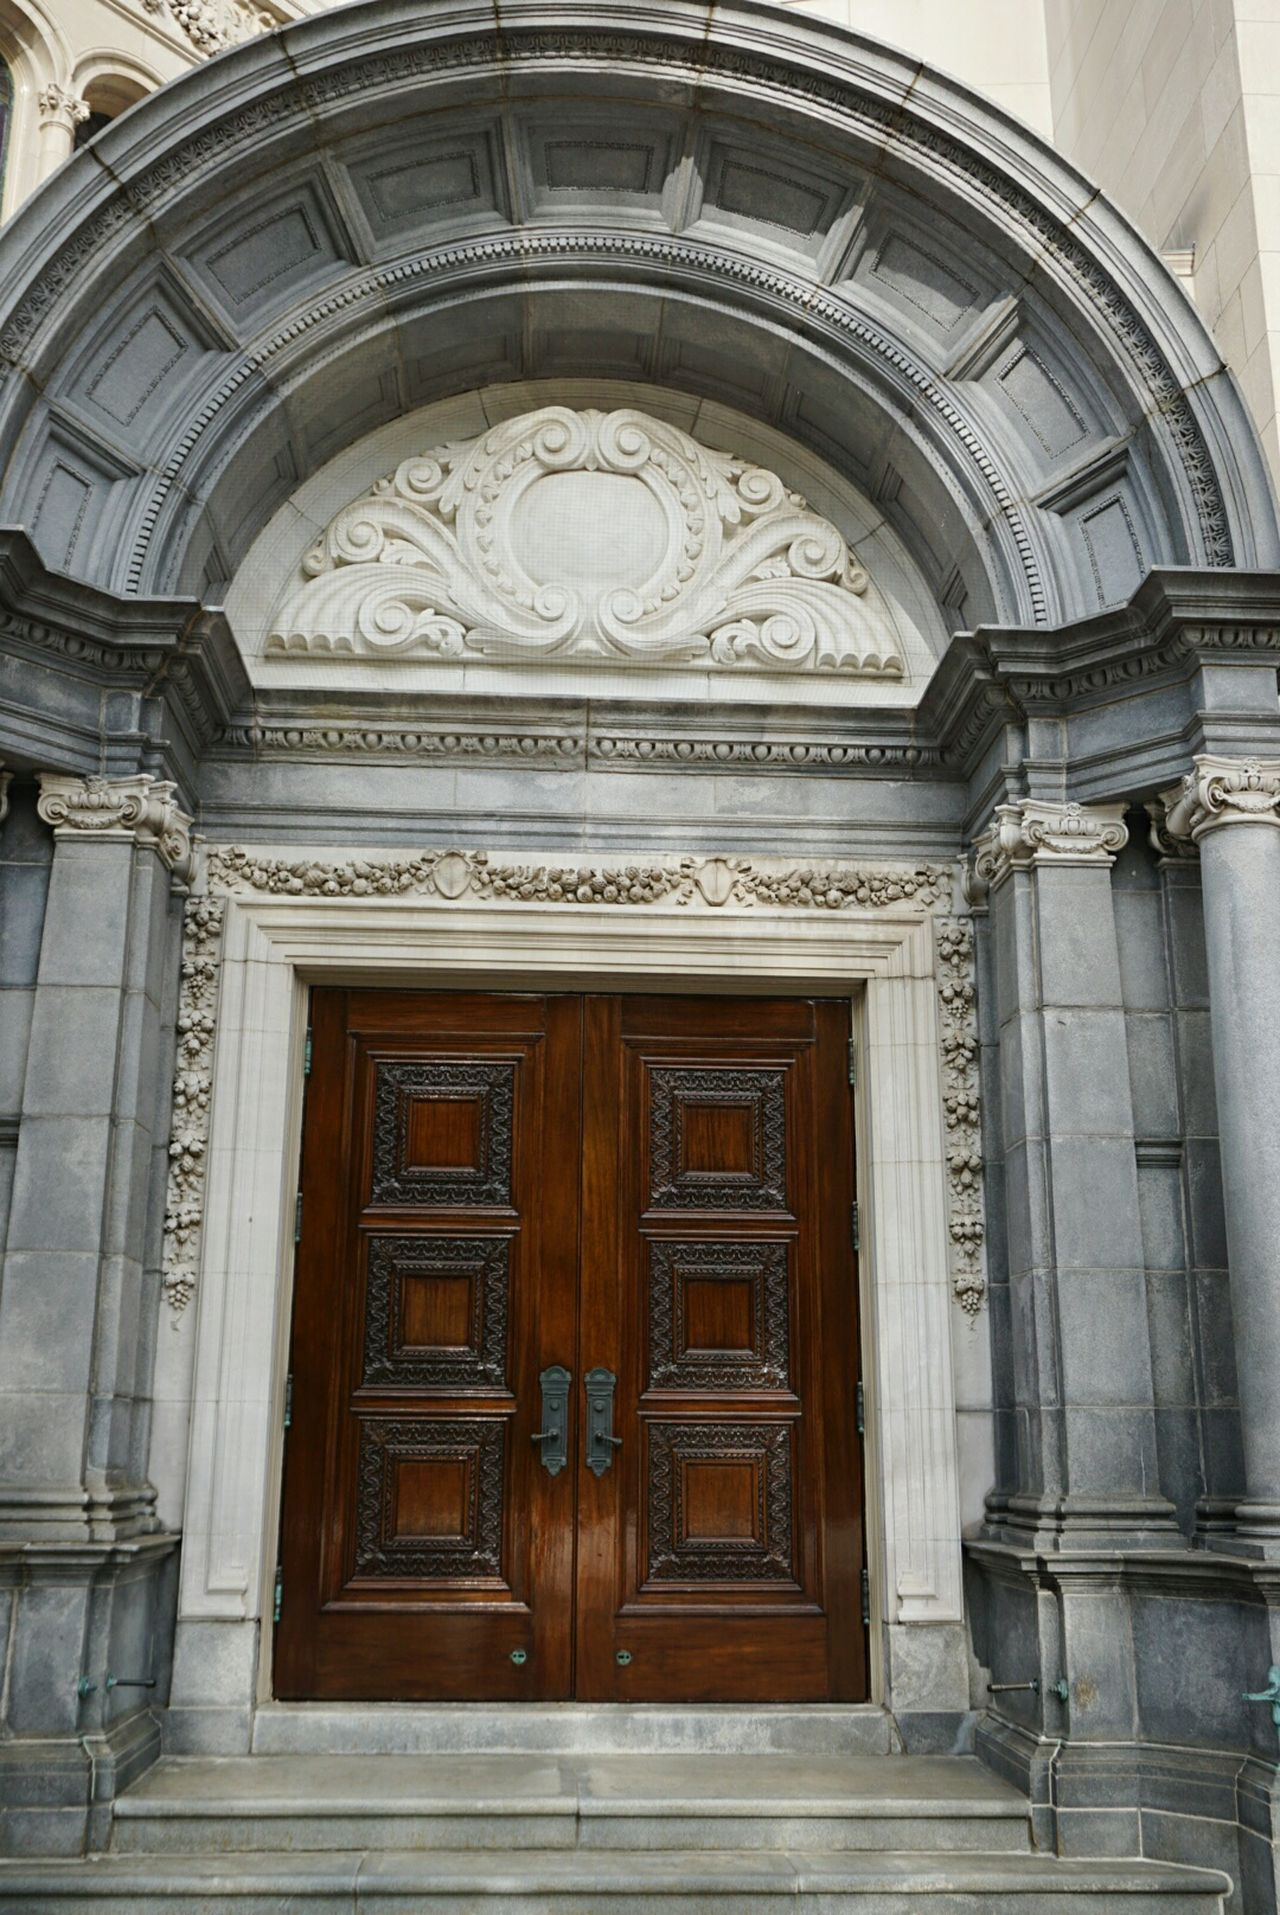 Chruch⛪ Door Entrace